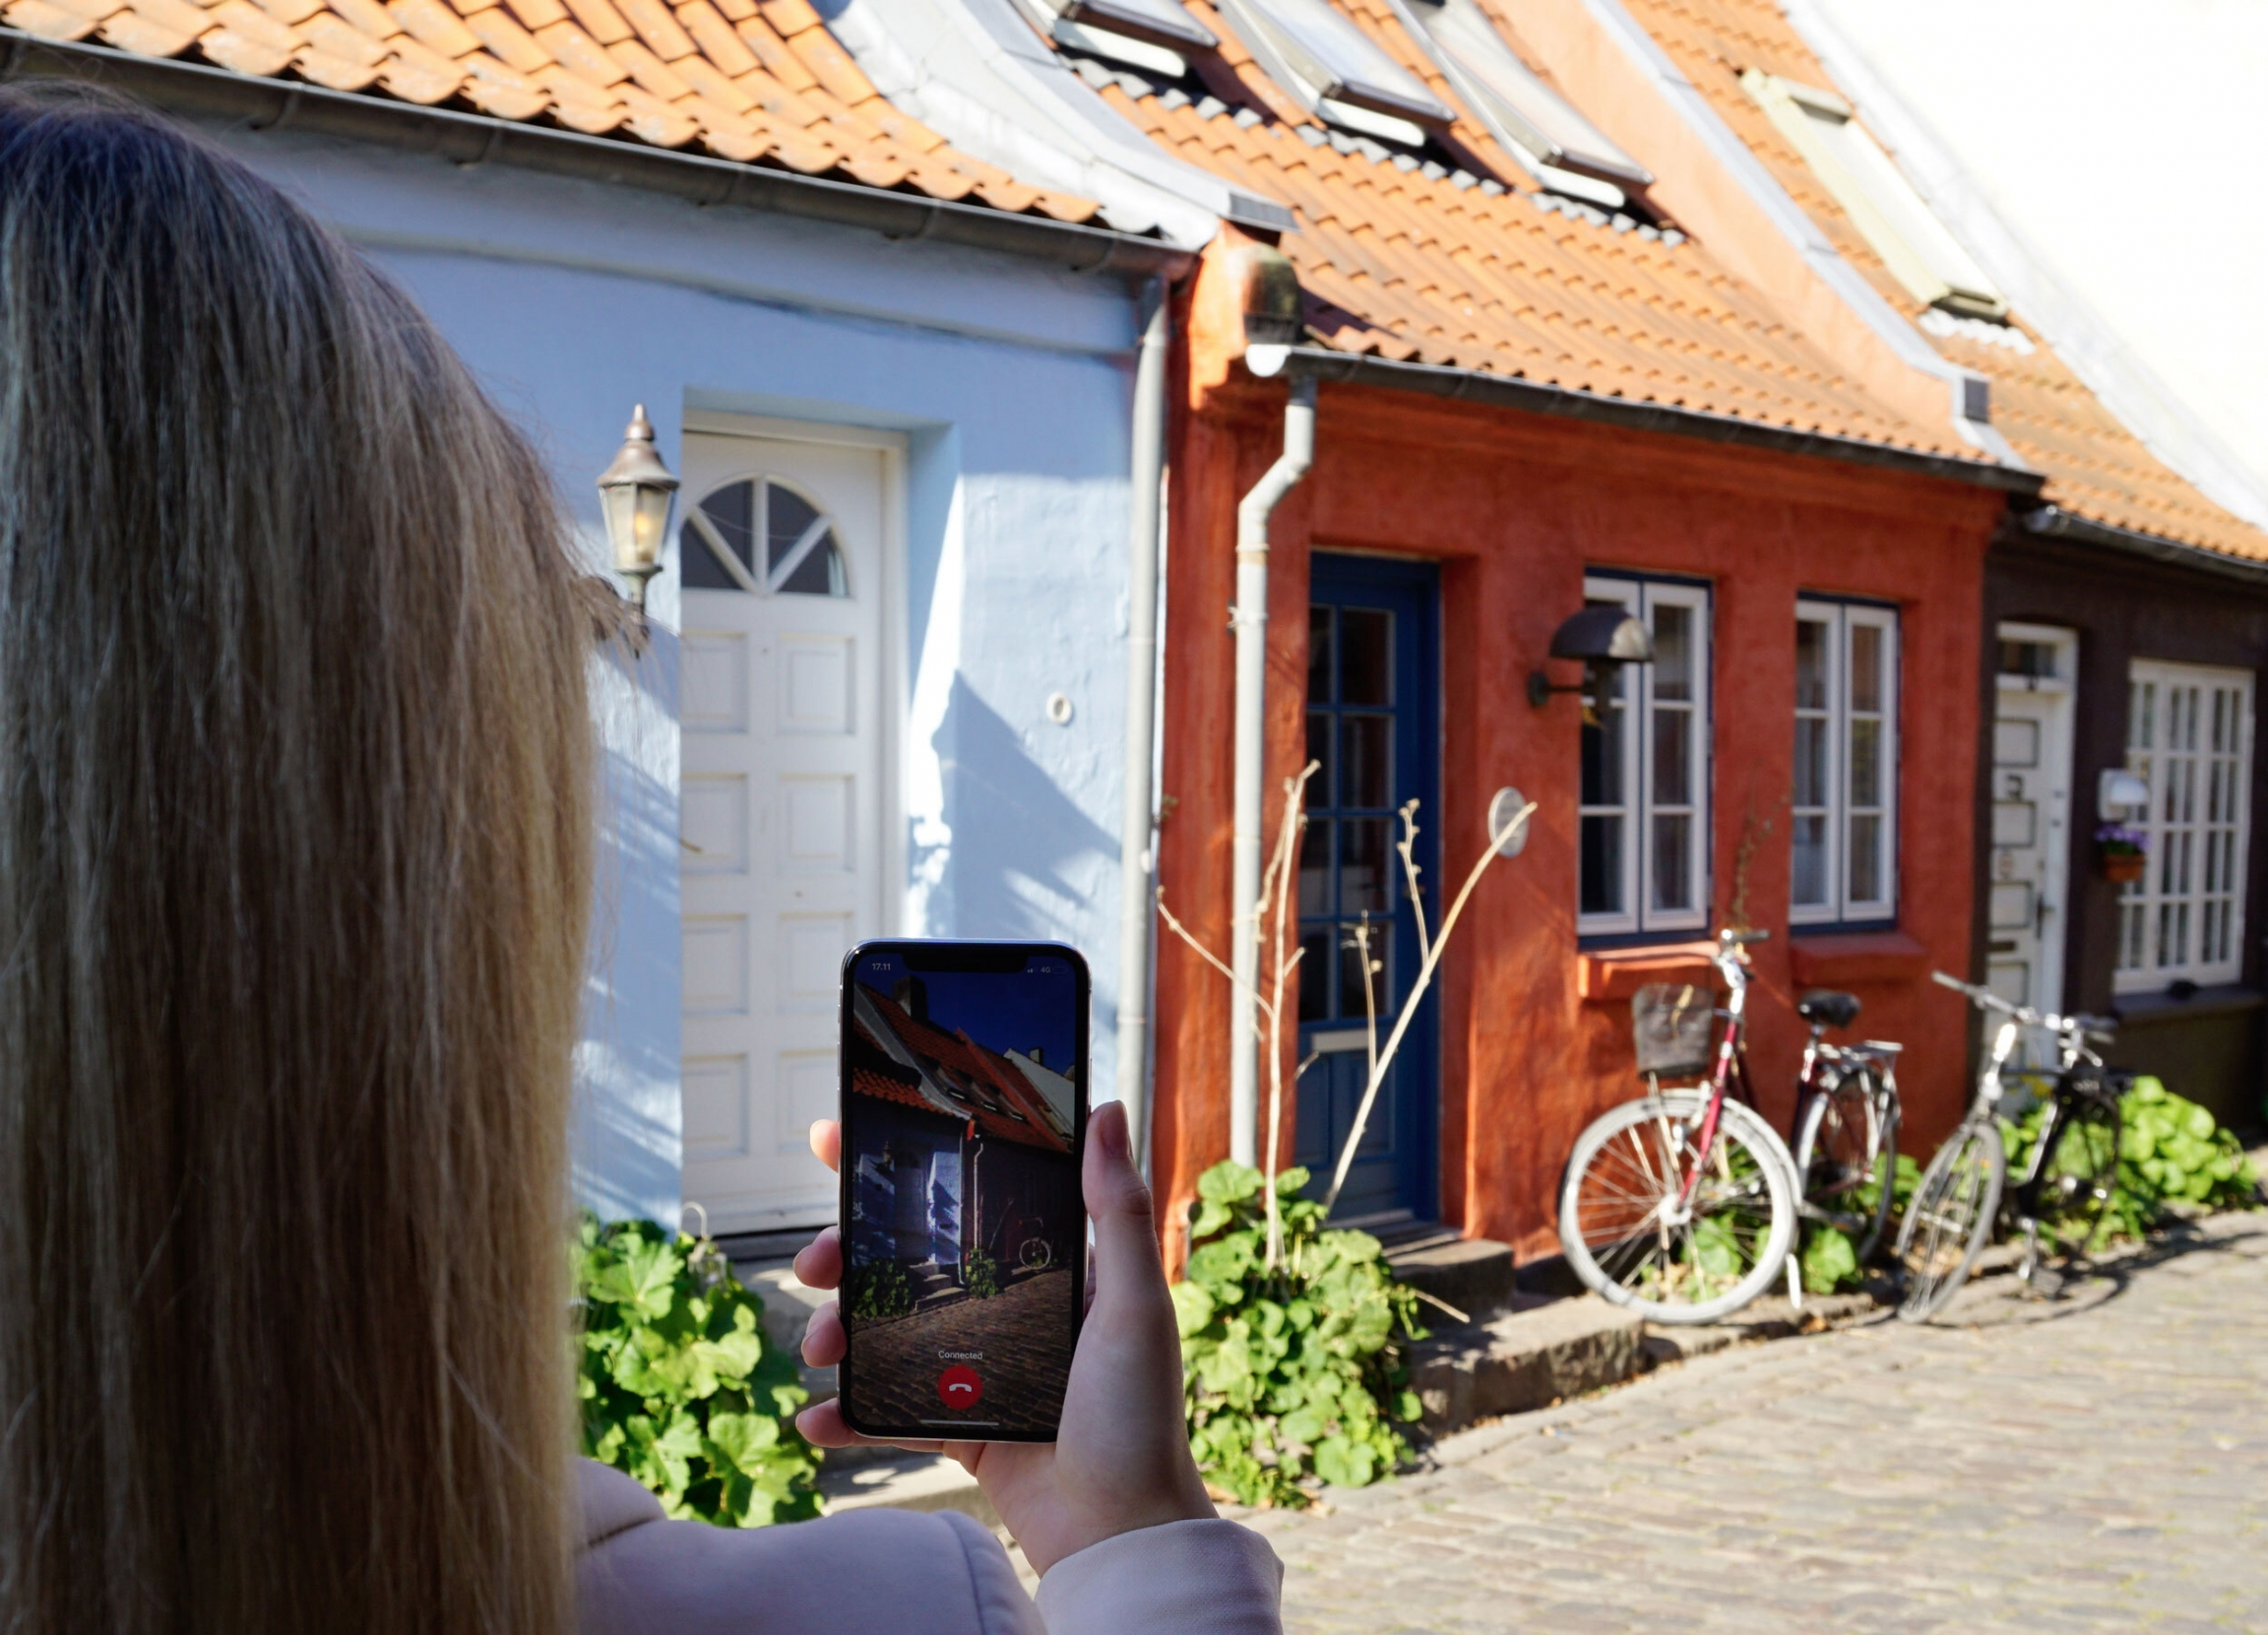 A woman uses Be My Eyes video chat app to connect with a sighted volunteer to show a house on a cobblestone street.